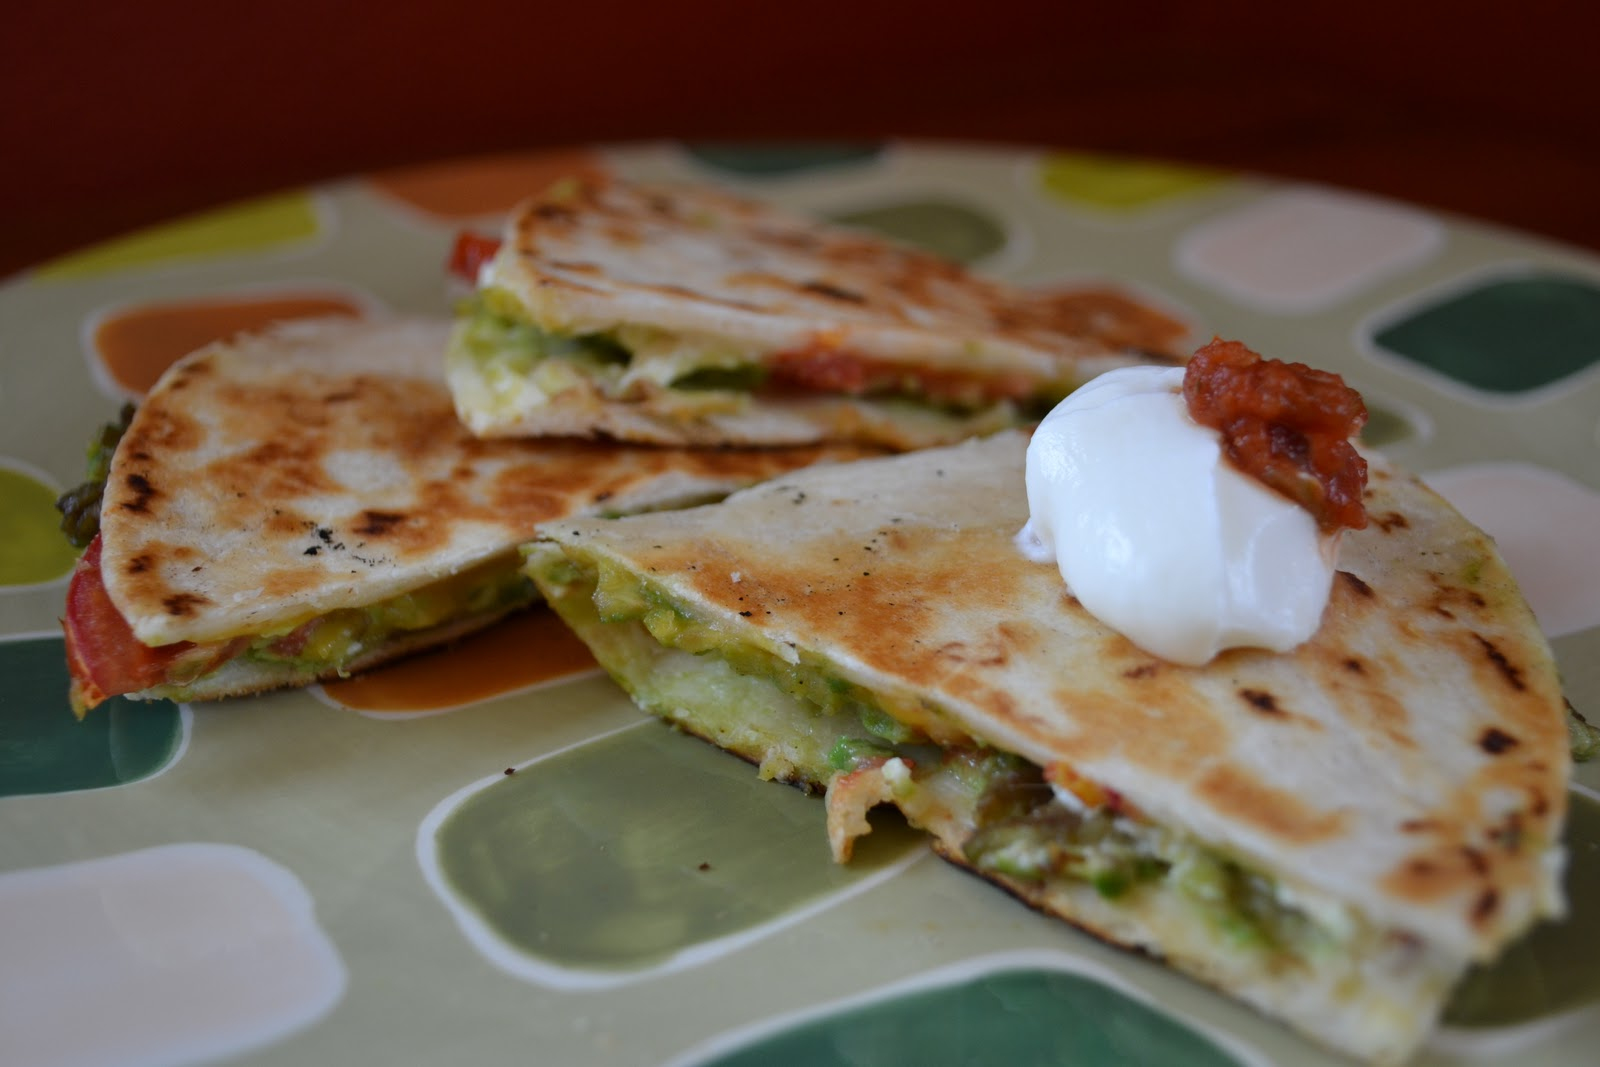 Food is a Blessing: Avocado Quesadillas